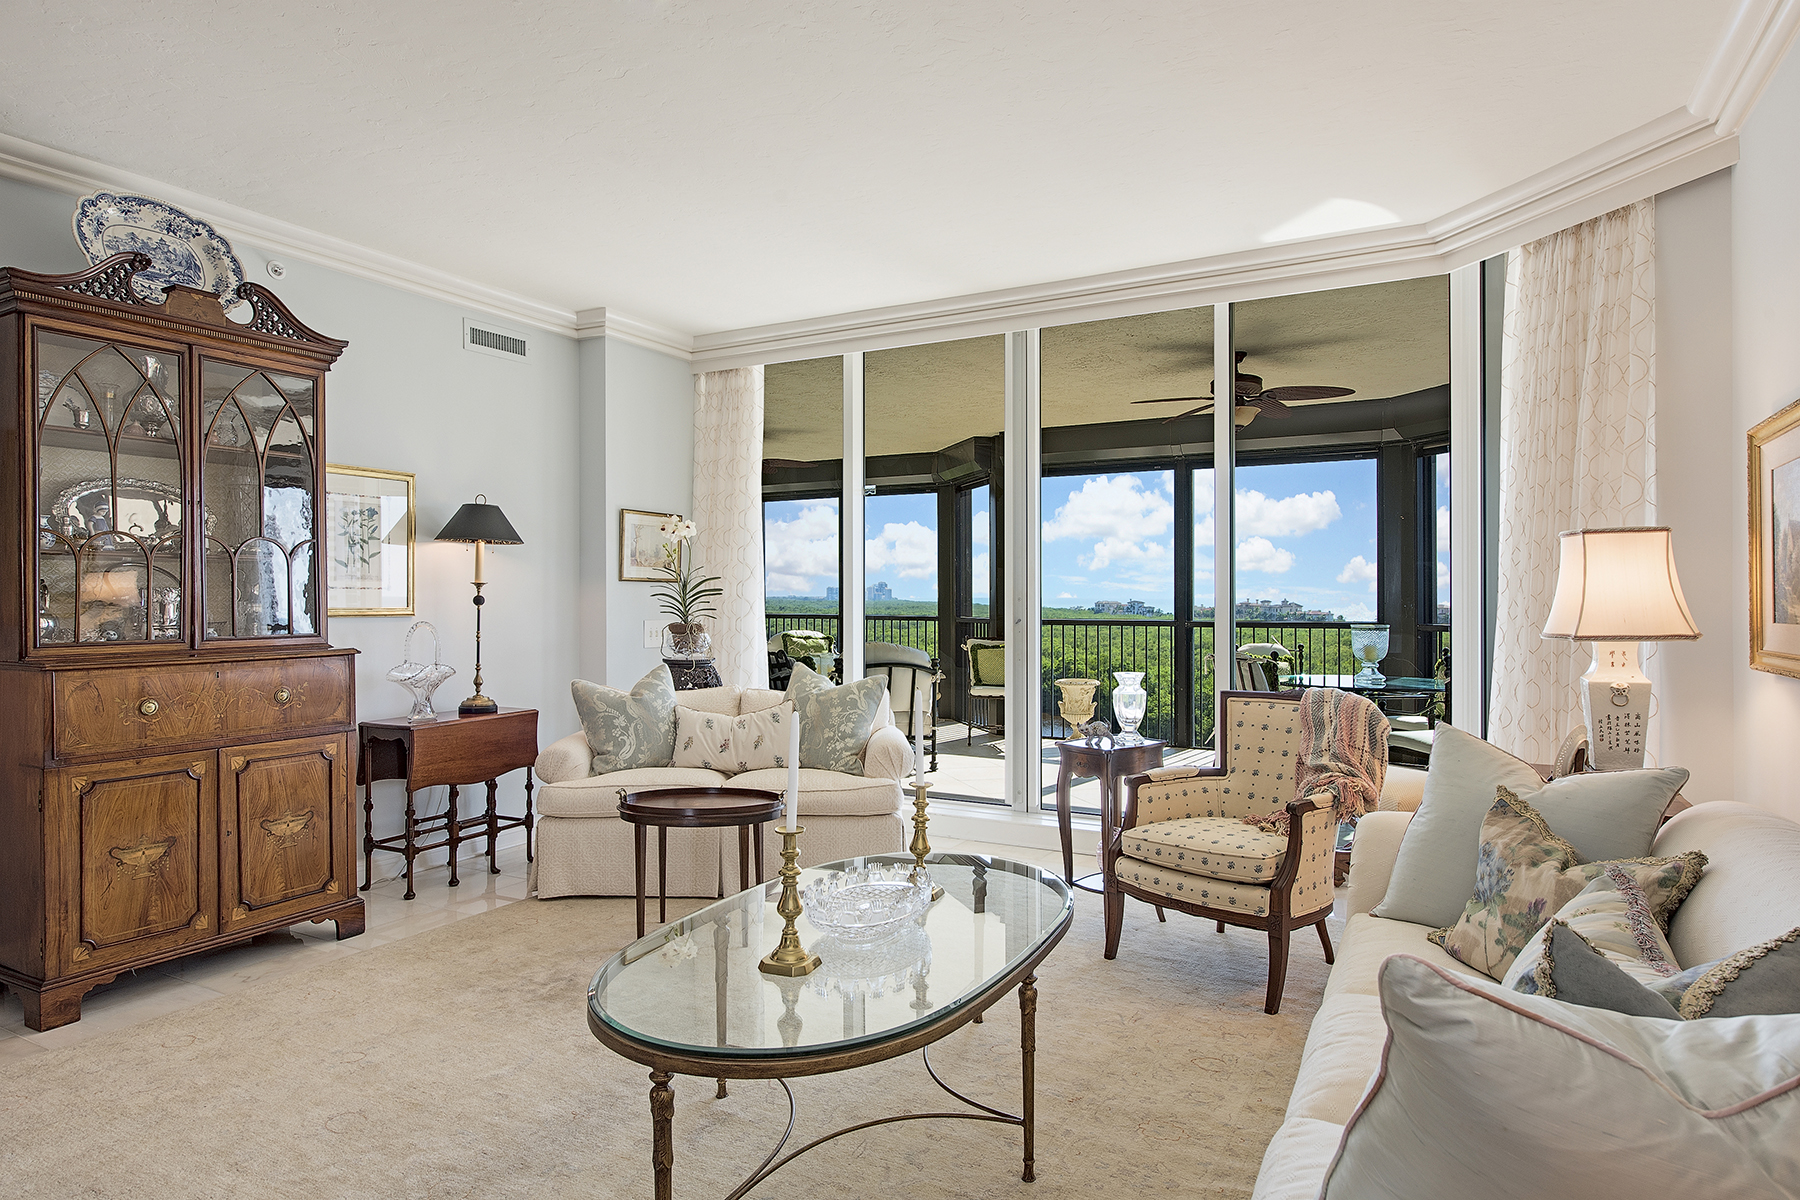 Condominium for Sale at PELICAN BAY - TOSCANA AT BAY COLONY 8960 Bay Colony Dr 804 Naples, Florida 34108 United States